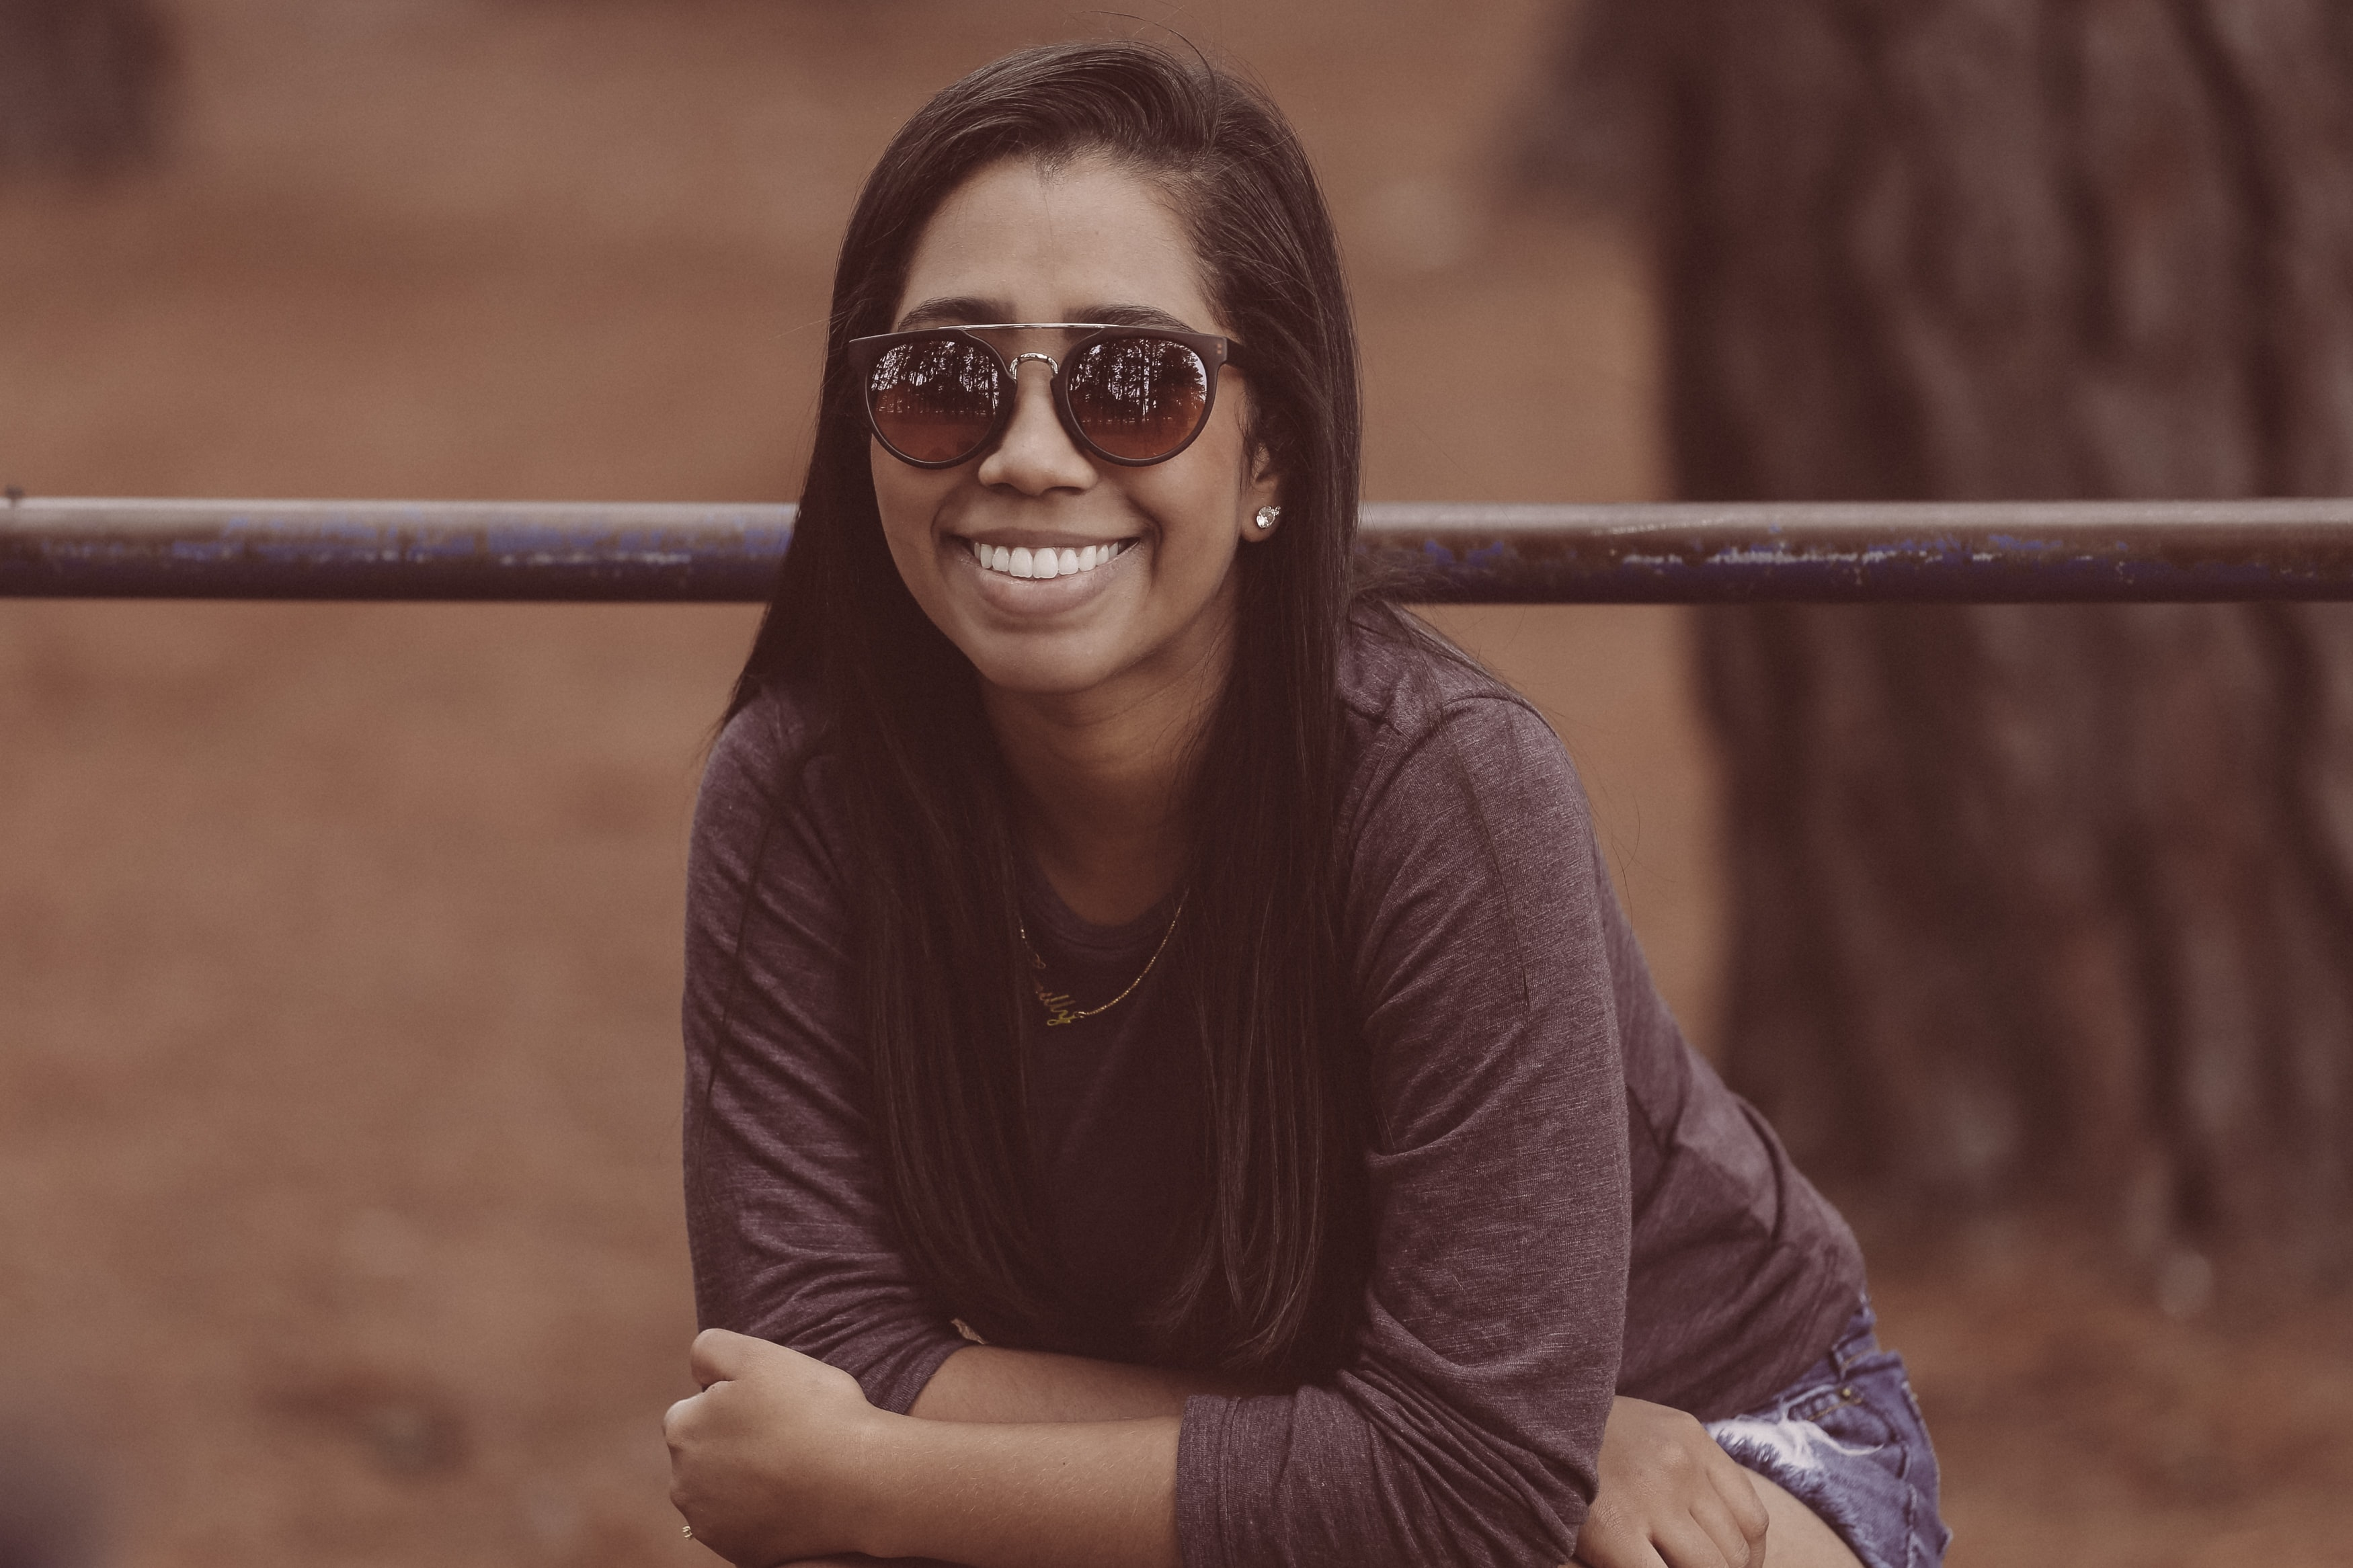 Woman in sunglasses smiles in front of a railing in Parque da Cidade